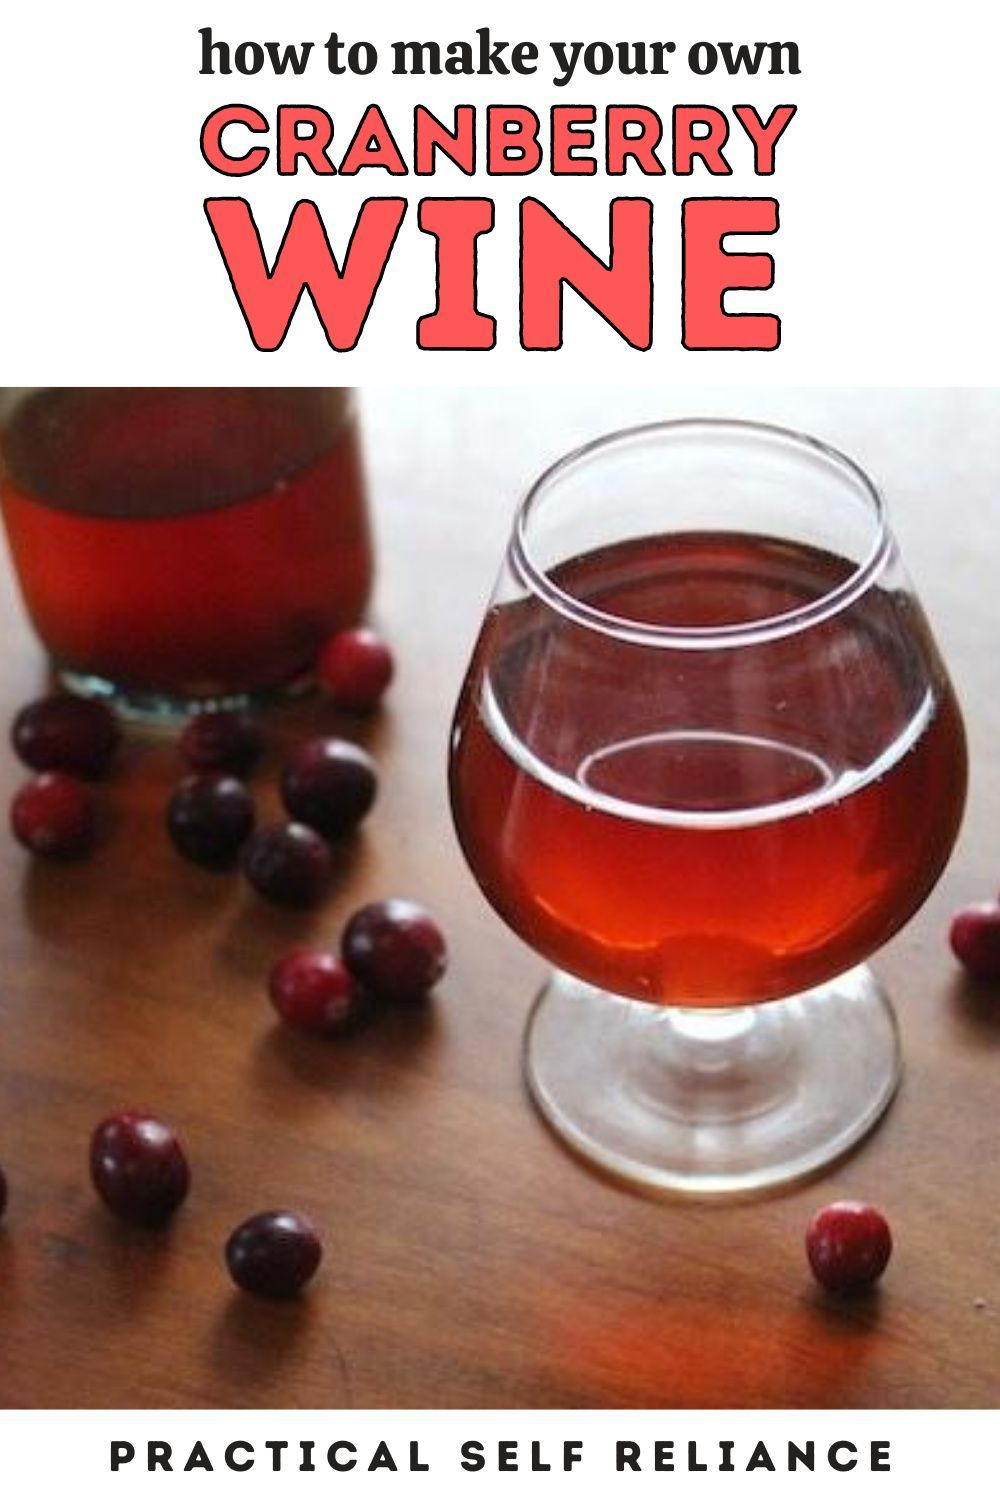 Homemade Cranberry Wine Recipe In 2020 Cranberry Wine Homemade Wine Recipes Homemade Wine